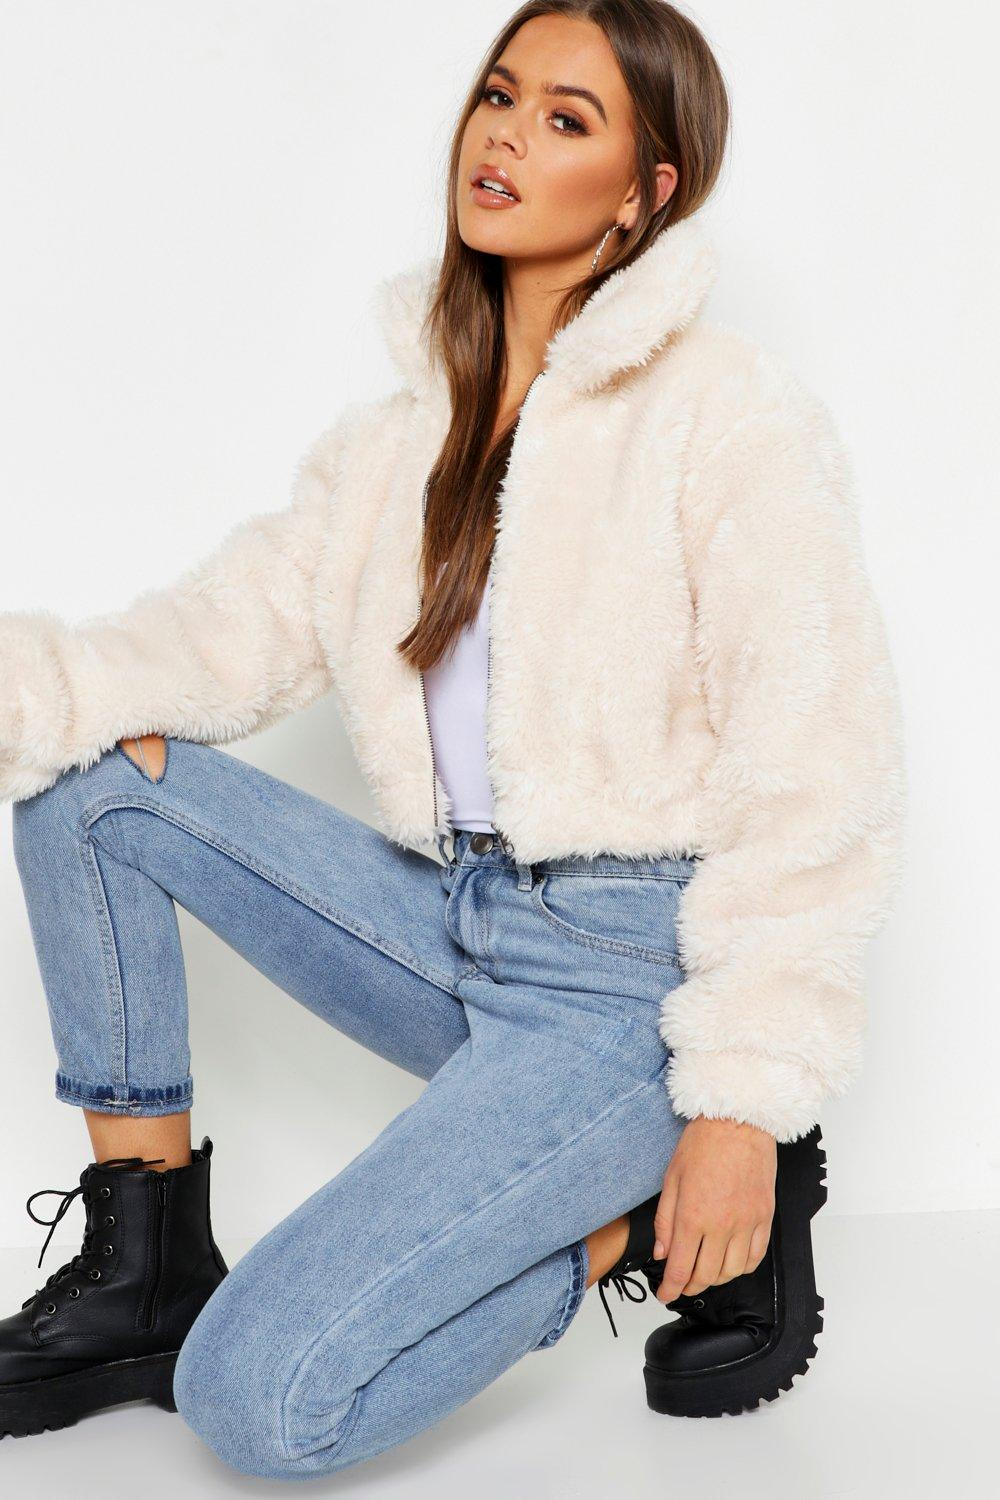 dd3c4835bccc Cropped Shaggy Faux Fur Bomber Jacket. Hover to zoom